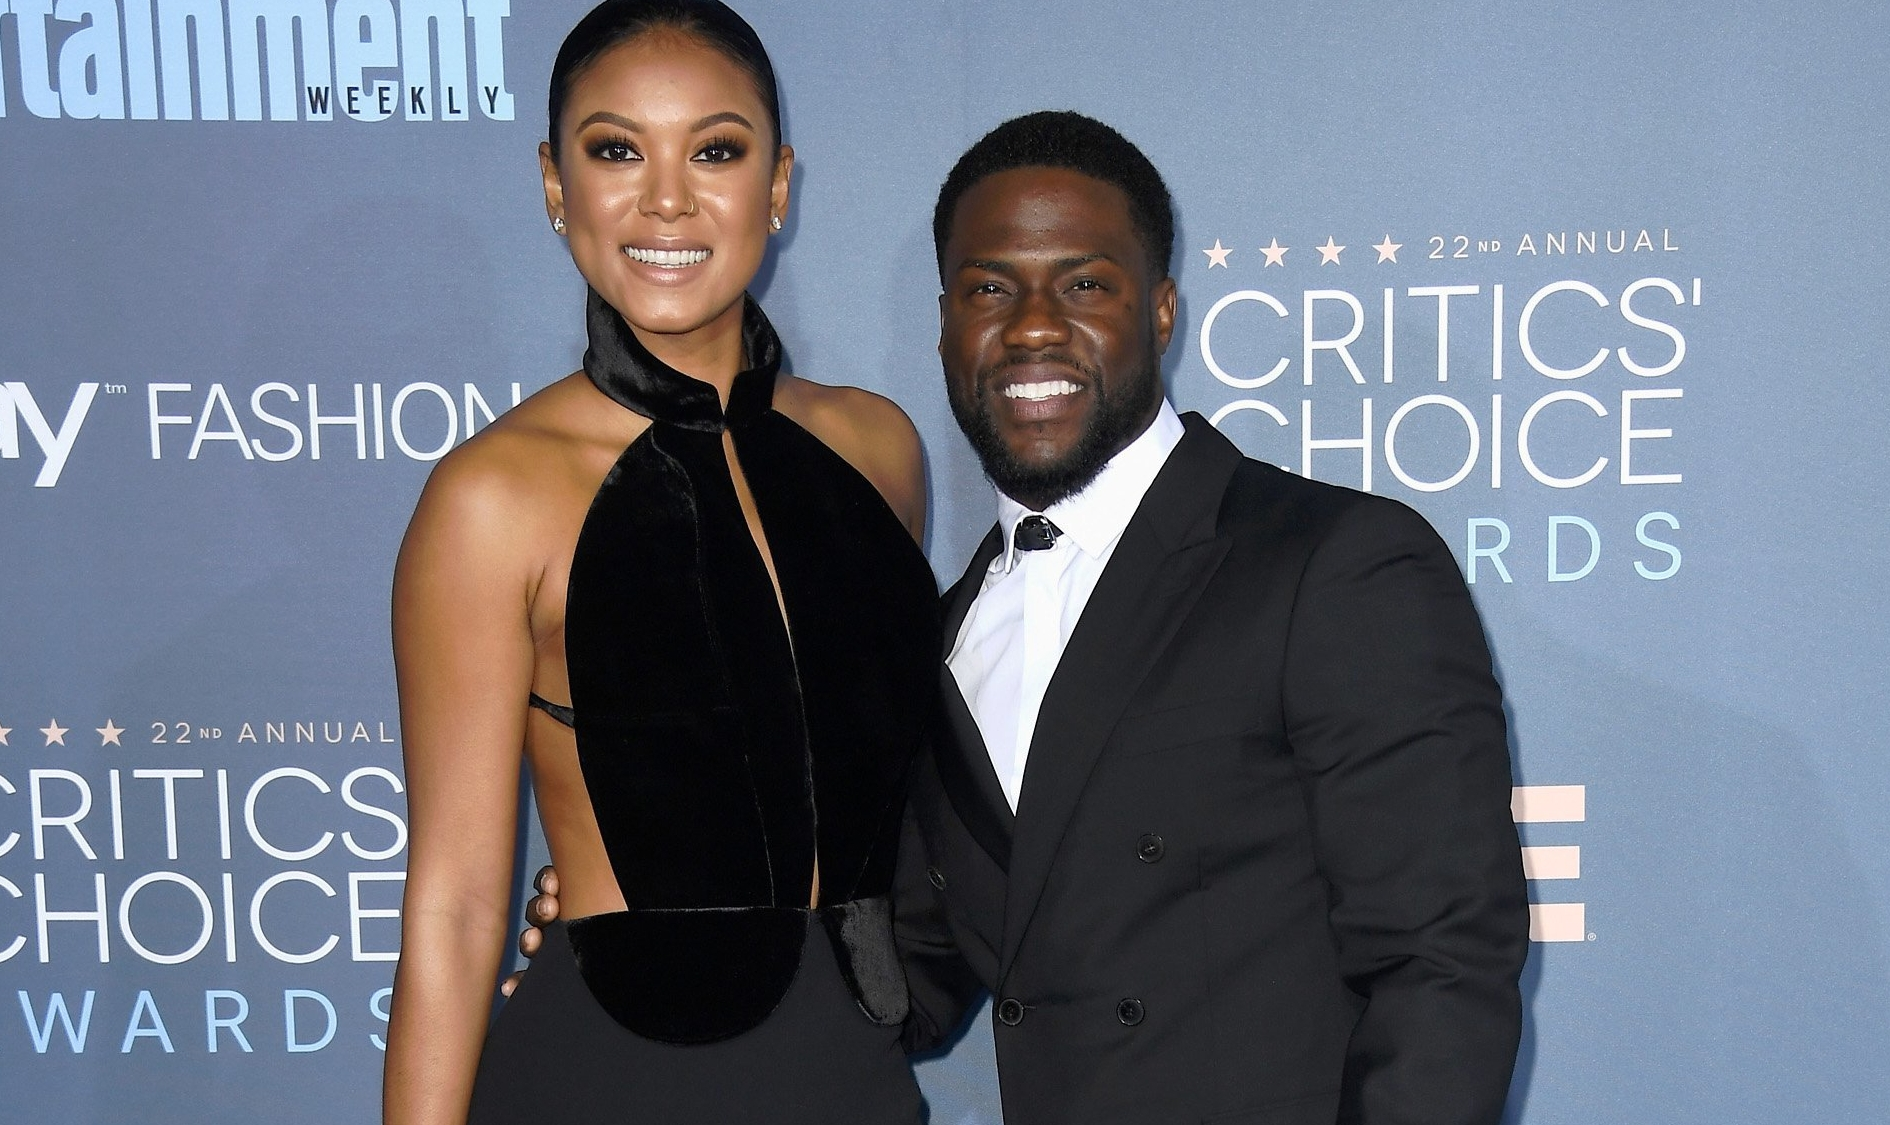 KEVIN HART SPILLS ABOUT CHEATING ON PREGNANT WIFE